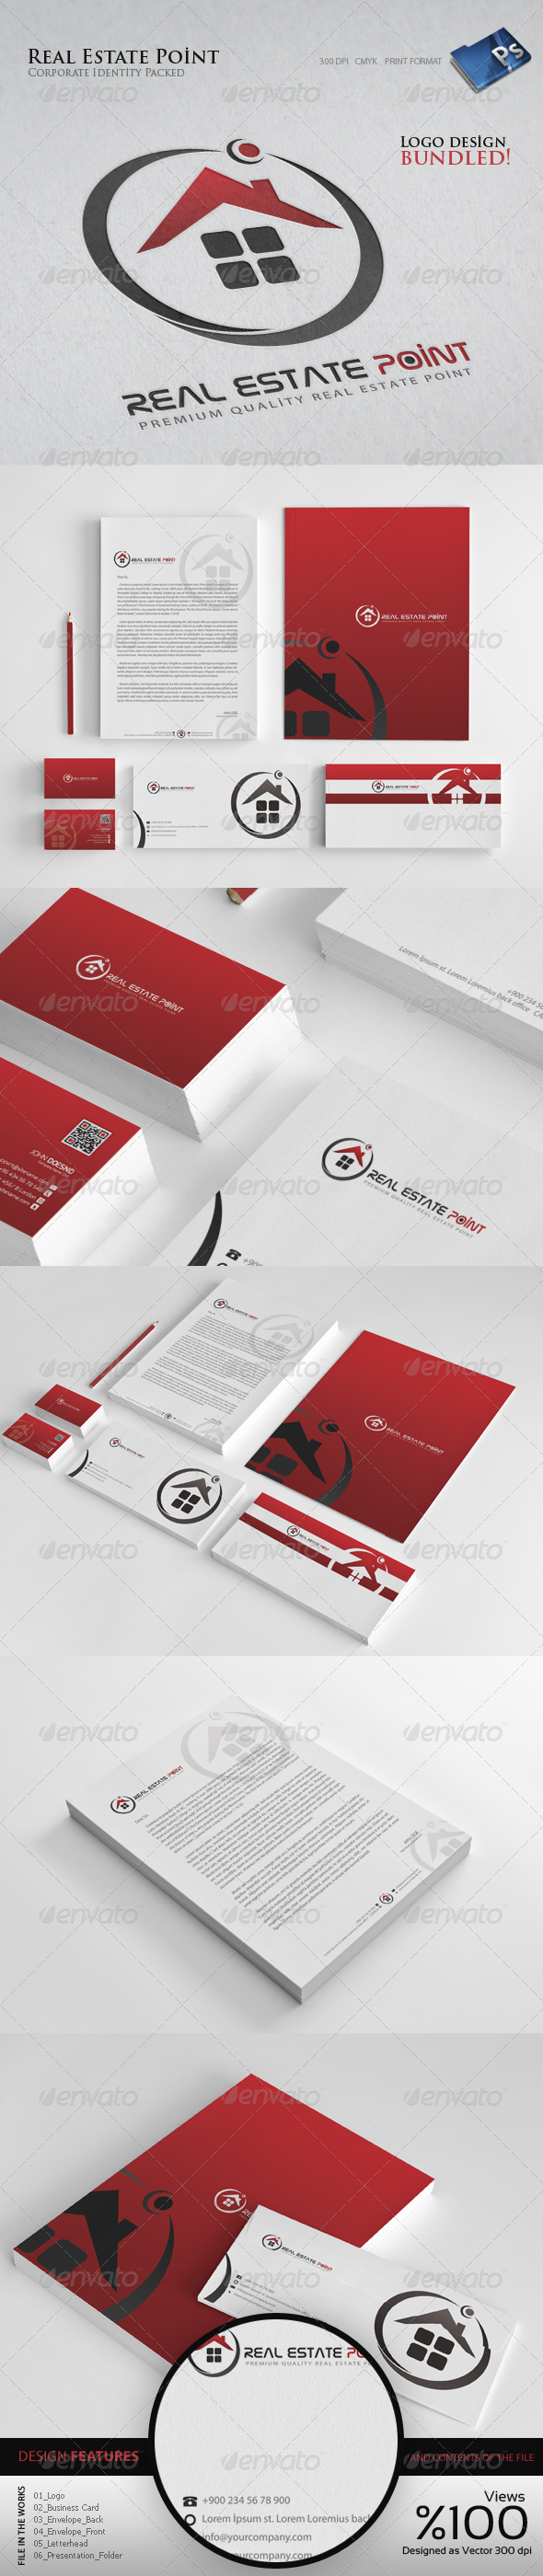 Real Estate Point - Corporate Identity - Stationery Print Templates